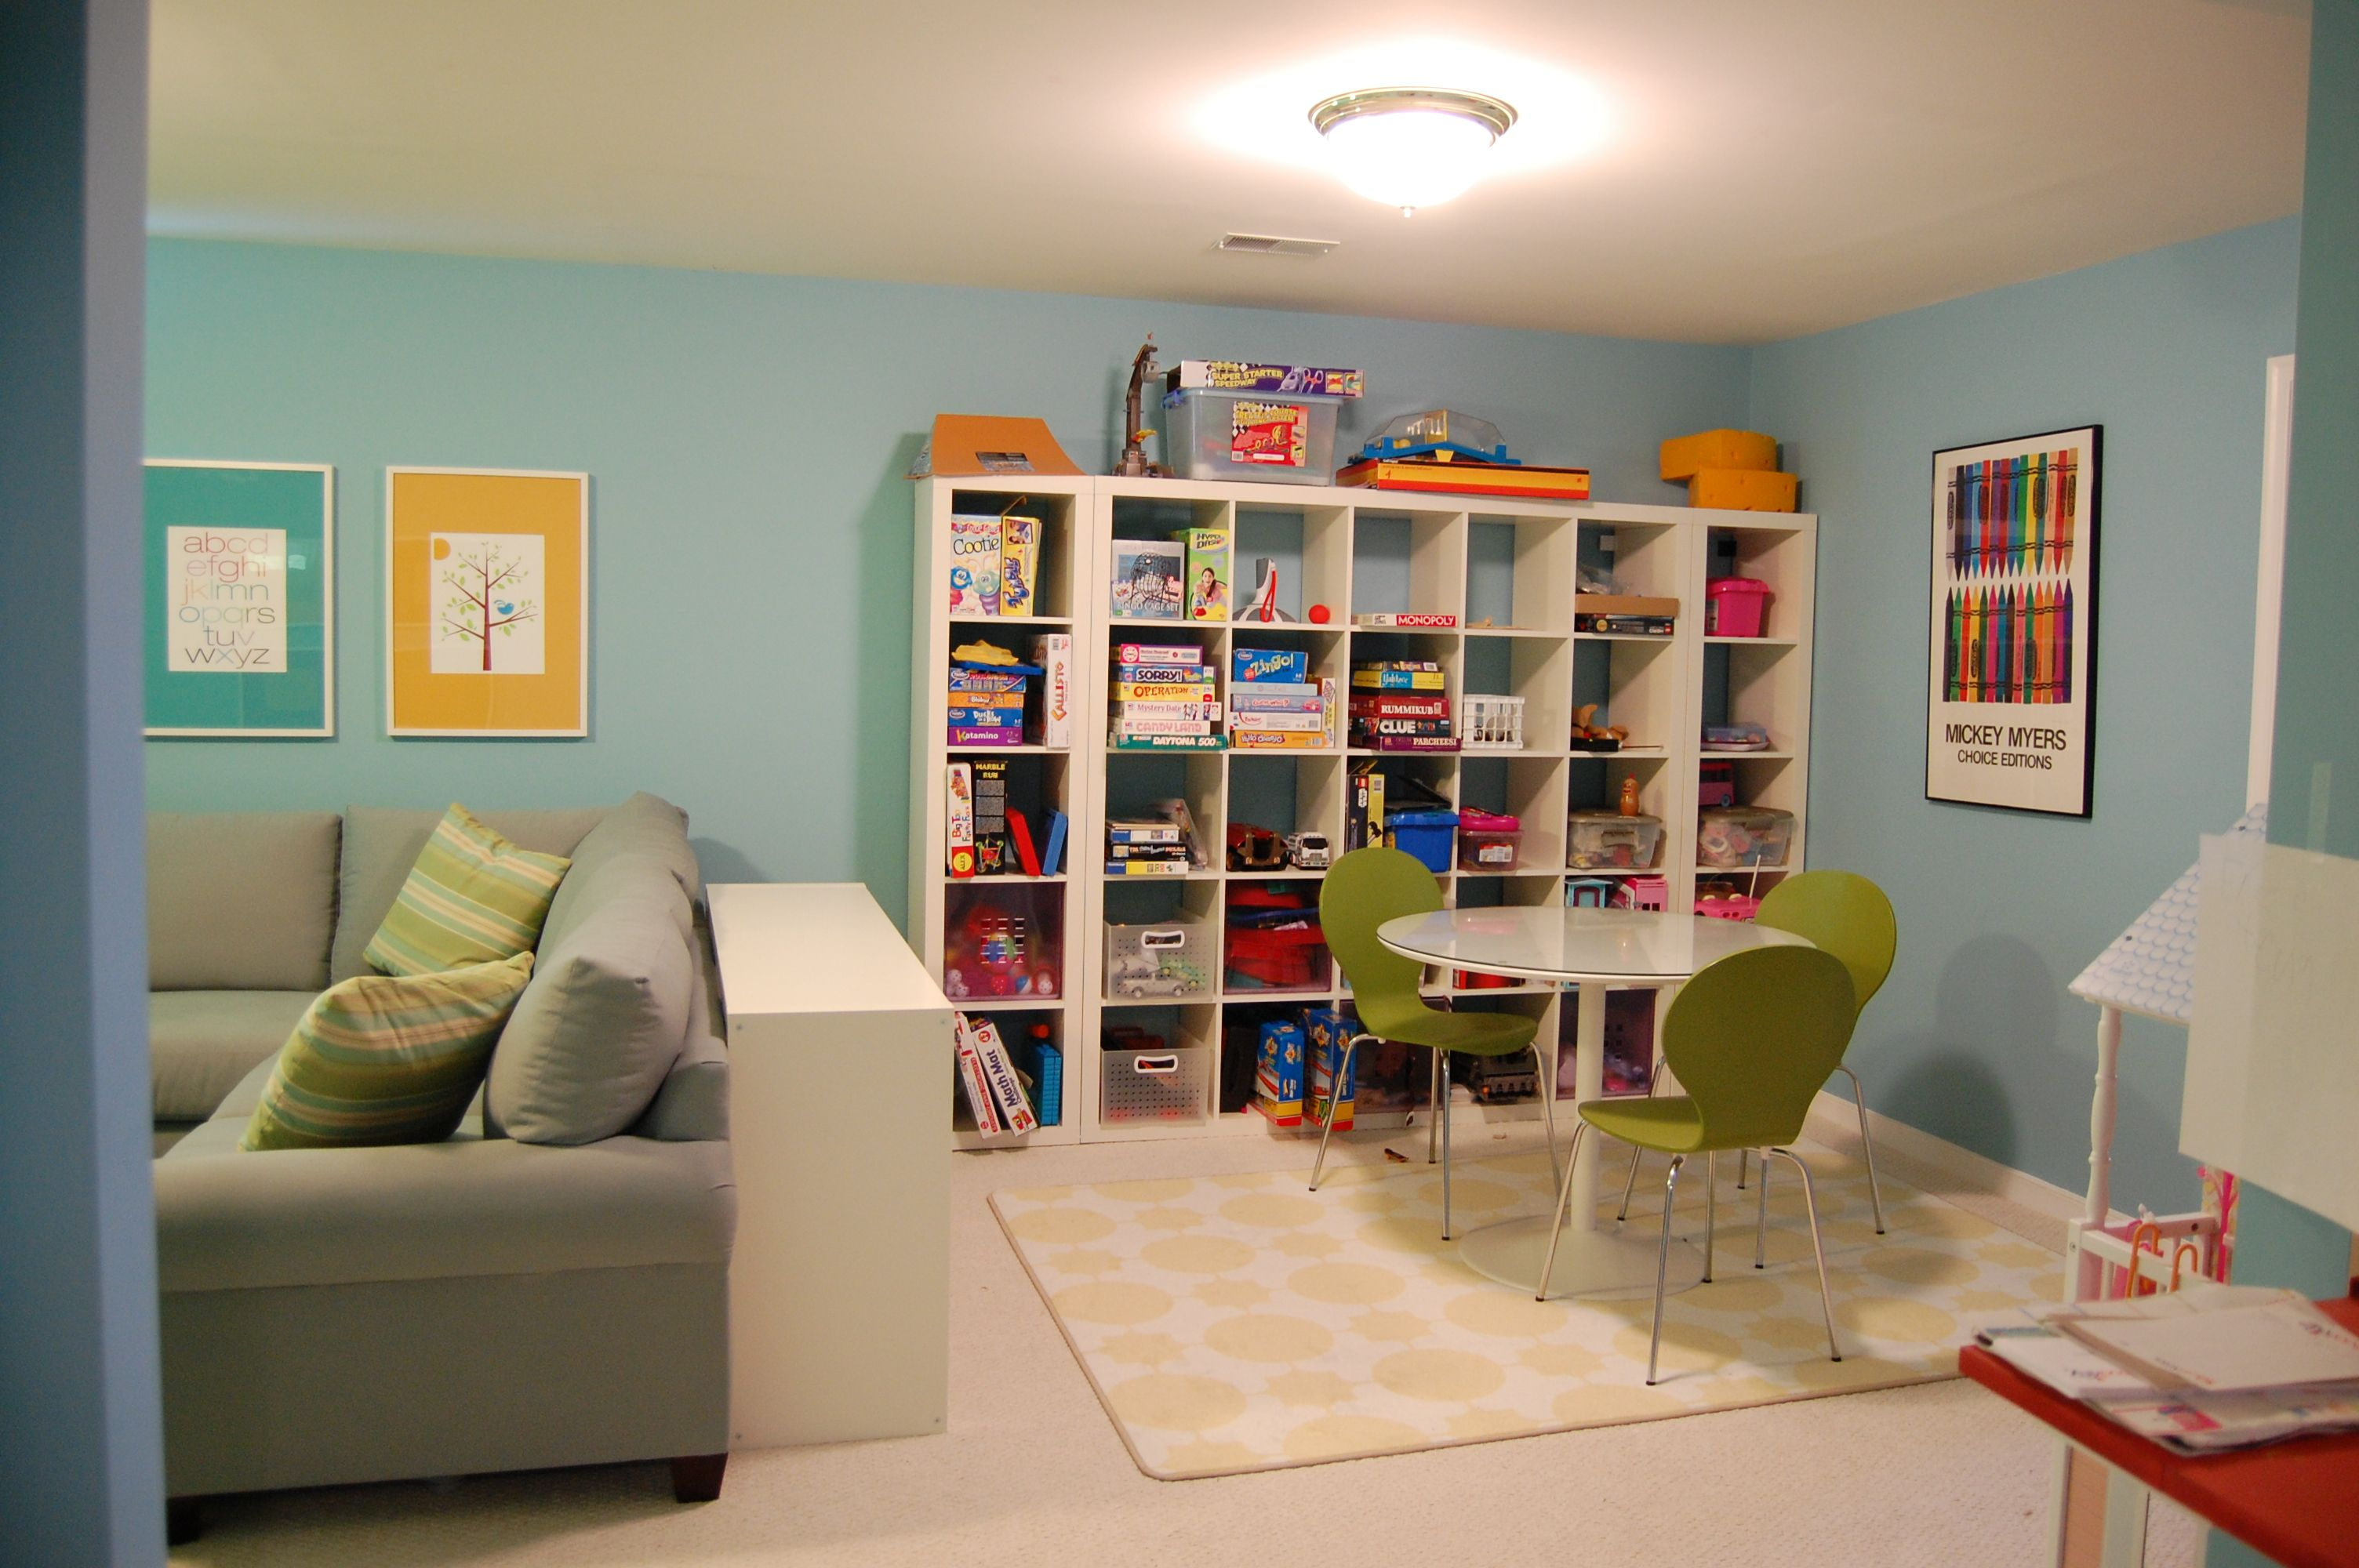 Fun and Functional Family Playroom | Playrooms, Room ideas and Room